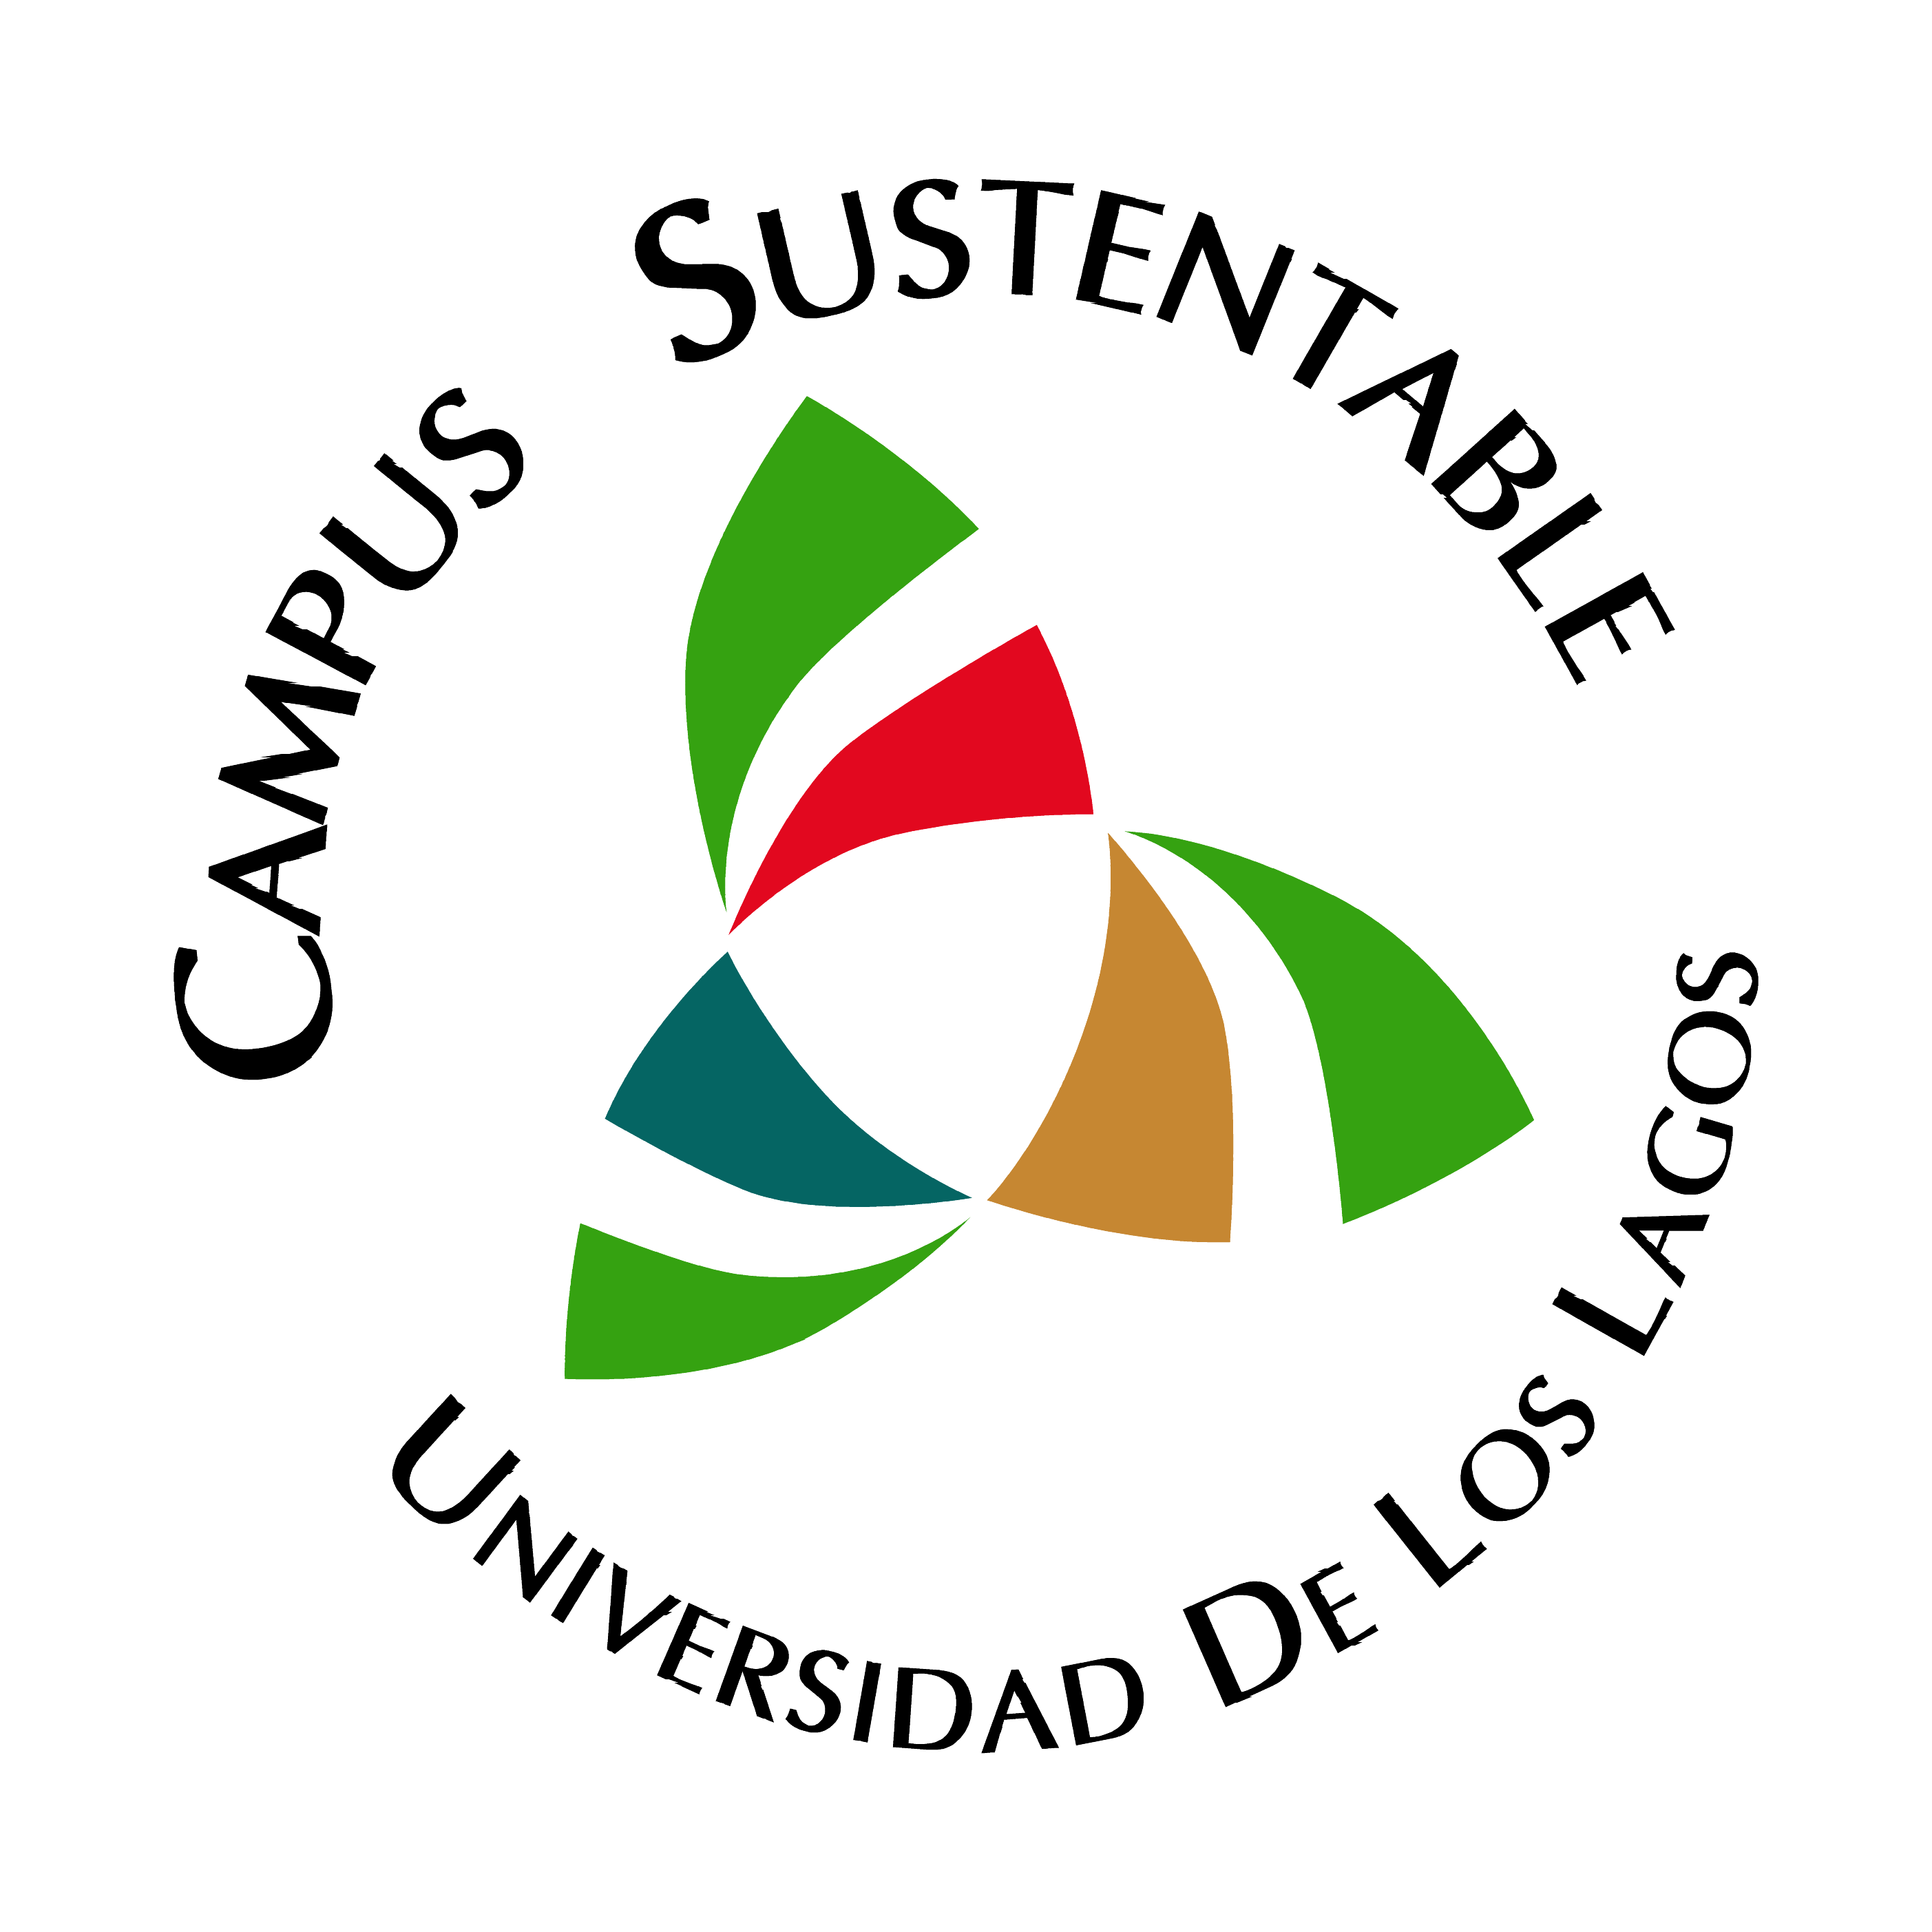 LOGO CAMPUS SUSTENTABLE